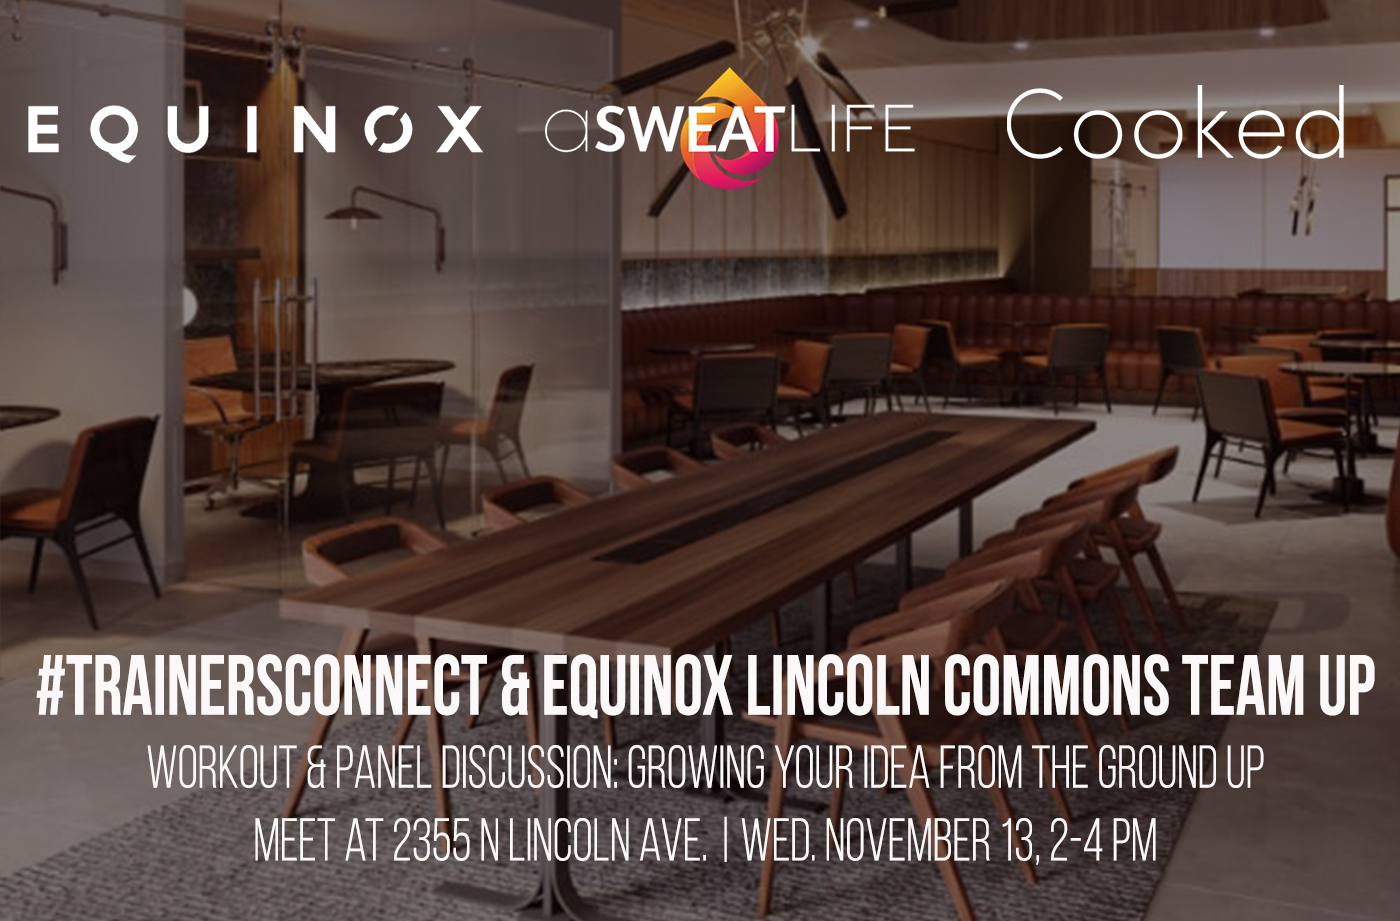 #trainersconnect at equinox lincoln commons november